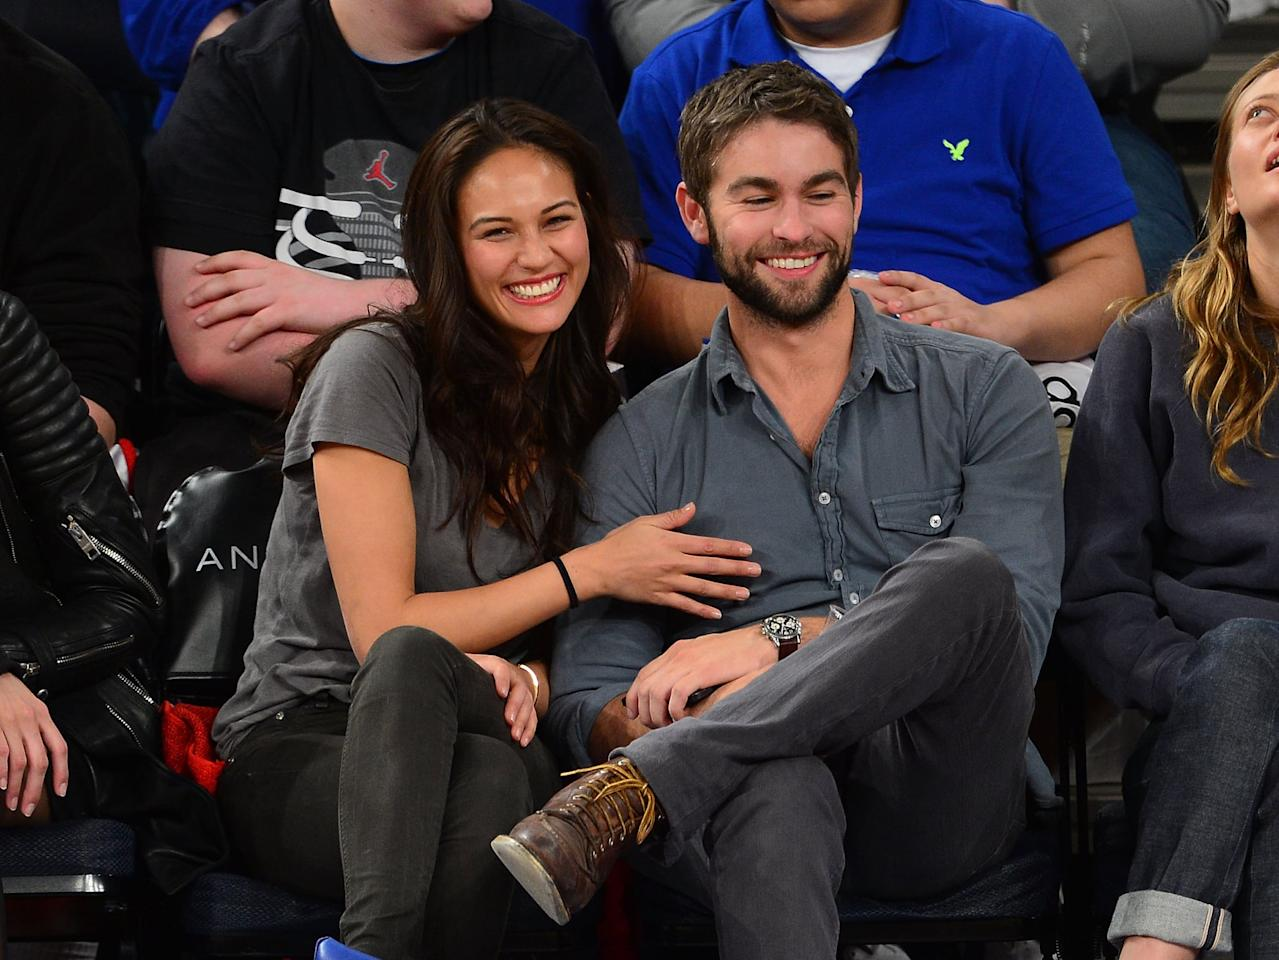 "<p>Chace and the model started dating in March 2013 while he was still living in NYC. During an interview on the <strong>The Kyle and Jackie O Show</strong> in 2014, Chace discussed how their breakup had been amicable, saying, ""<product href=""https://www.eonline.com/news/560256/chace-crawford-and-rachelle-goulding-break-up"" target=""_blank"" class=""ga-track"" data-ga-category=""internal click"" data-ga-label=""https://www.eonline.com/news/560256/chace-crawford-and-rachelle-goulding-break-up"" data-ga-action=""body text link"">We had fun</product>."" As to why they broke up, it seems the long distance proved to be too much since Chace moved to LA to focus on his film career while <product href=""https://www.eonline.com/news/403471/chace-crawford-s-new-gal-pal-5-things-to-know-about-rachelle-goulding"" target=""_blank"" class=""ga-track"" data-ga-category=""internal click"" data-ga-label=""https://www.eonline.com/news/403471/chace-crawford-s-new-gal-pal-5-things-to-know-about-rachelle-goulding"" data-ga-action=""body text link"">Rachelle stayed in NYC</product>.</p>"